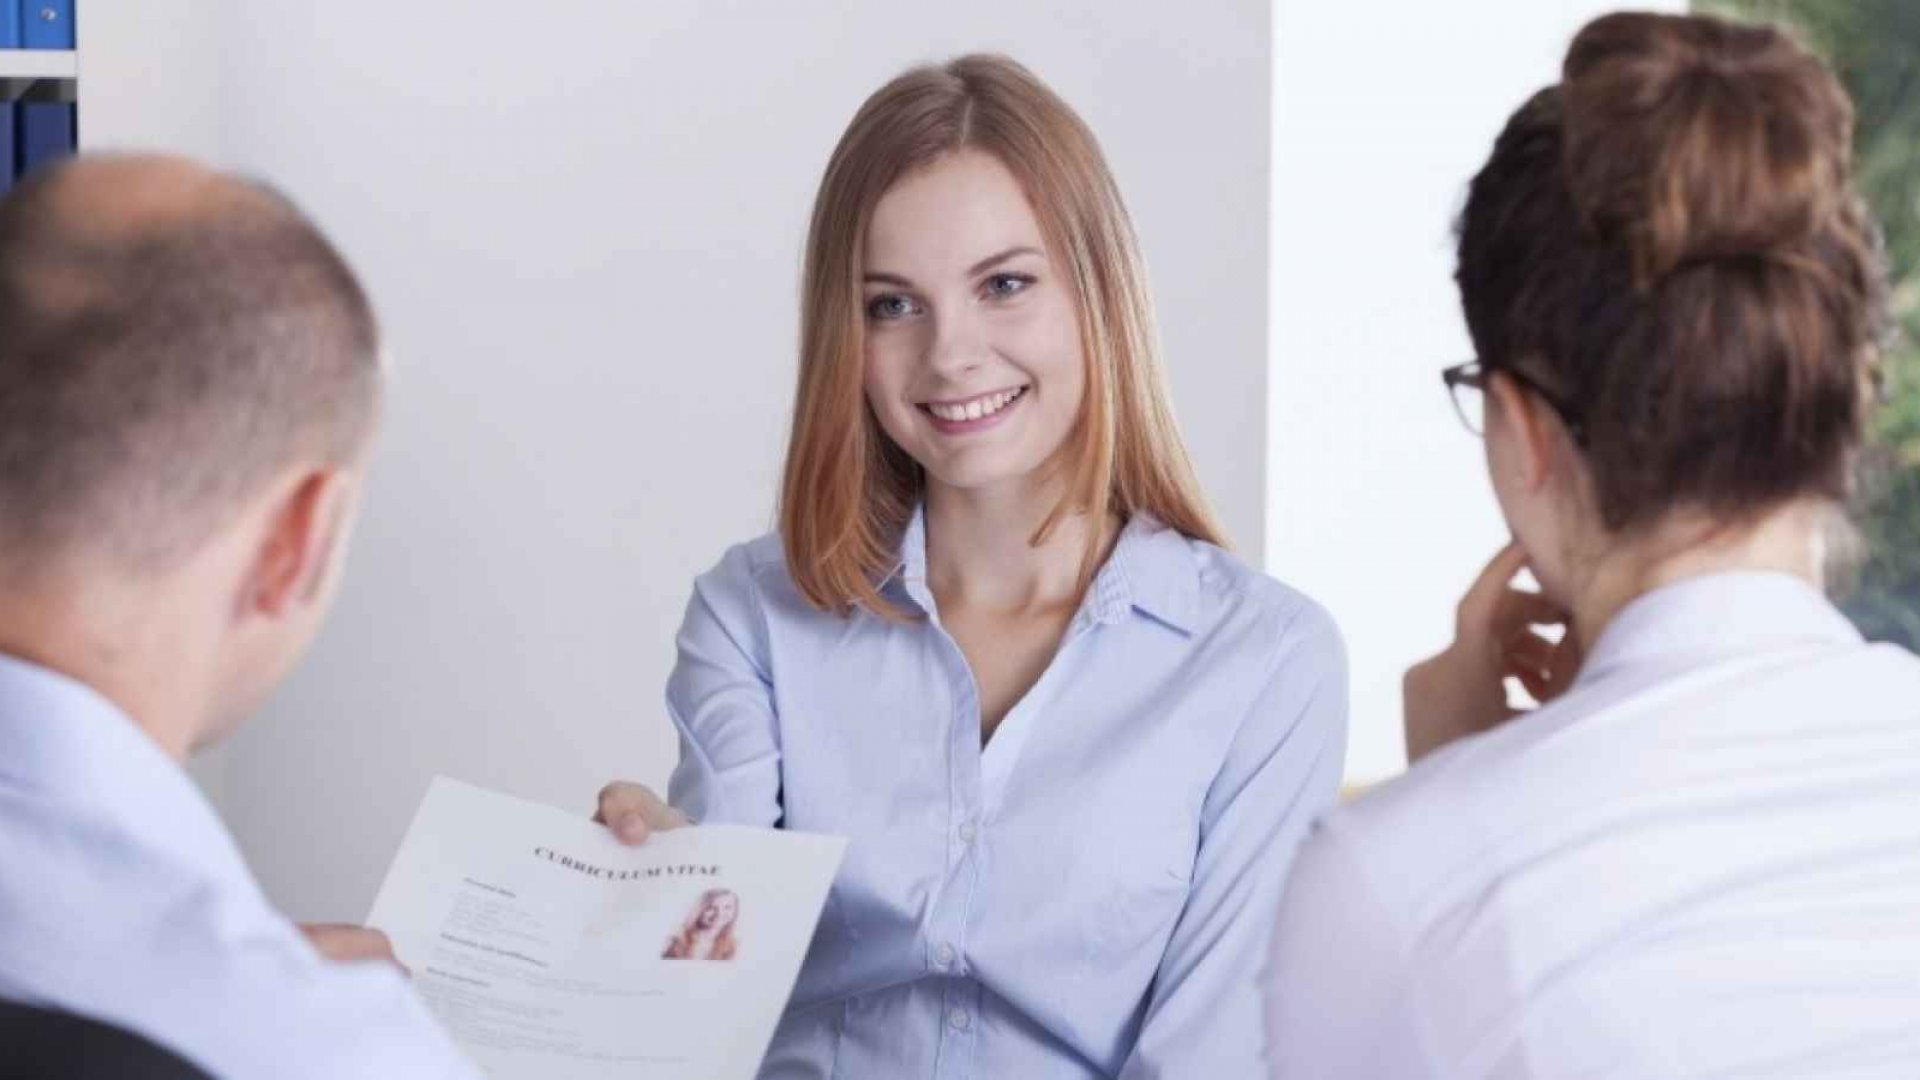 5 Essential Tips for Hiring Entry-Level Employees